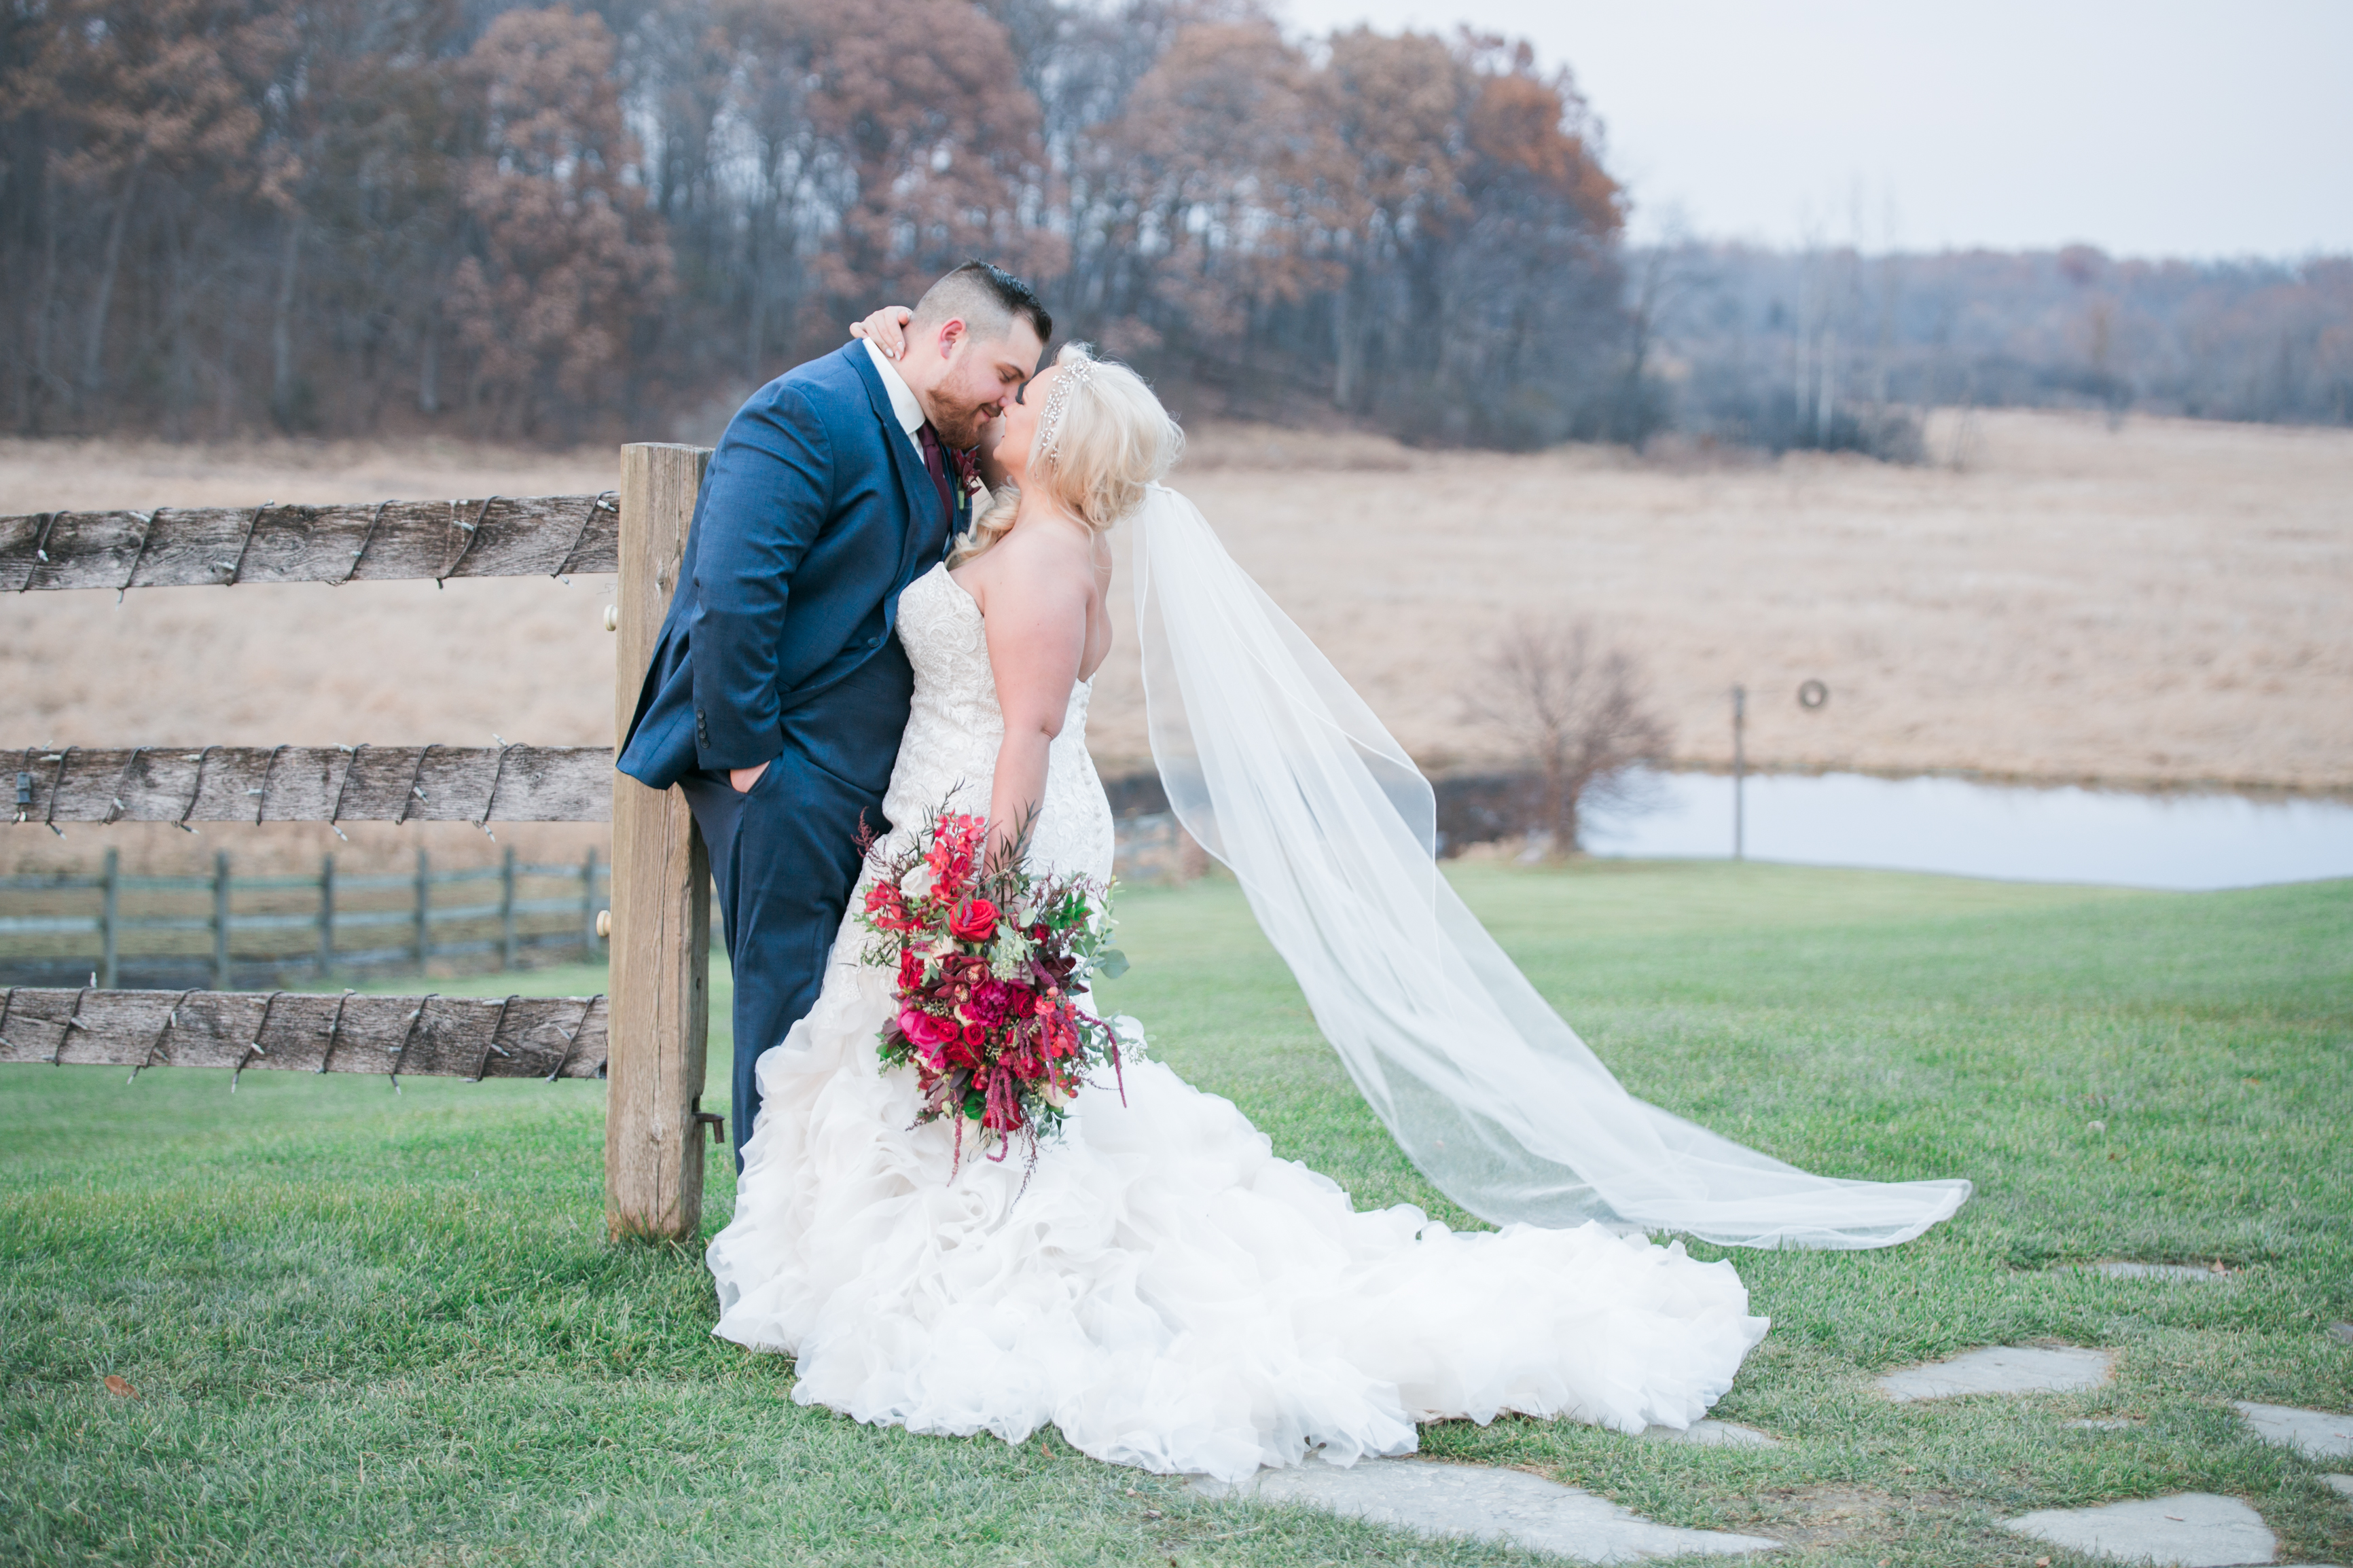 Golden Romantic Barn Wedding - Mike Staff Photography Michigan